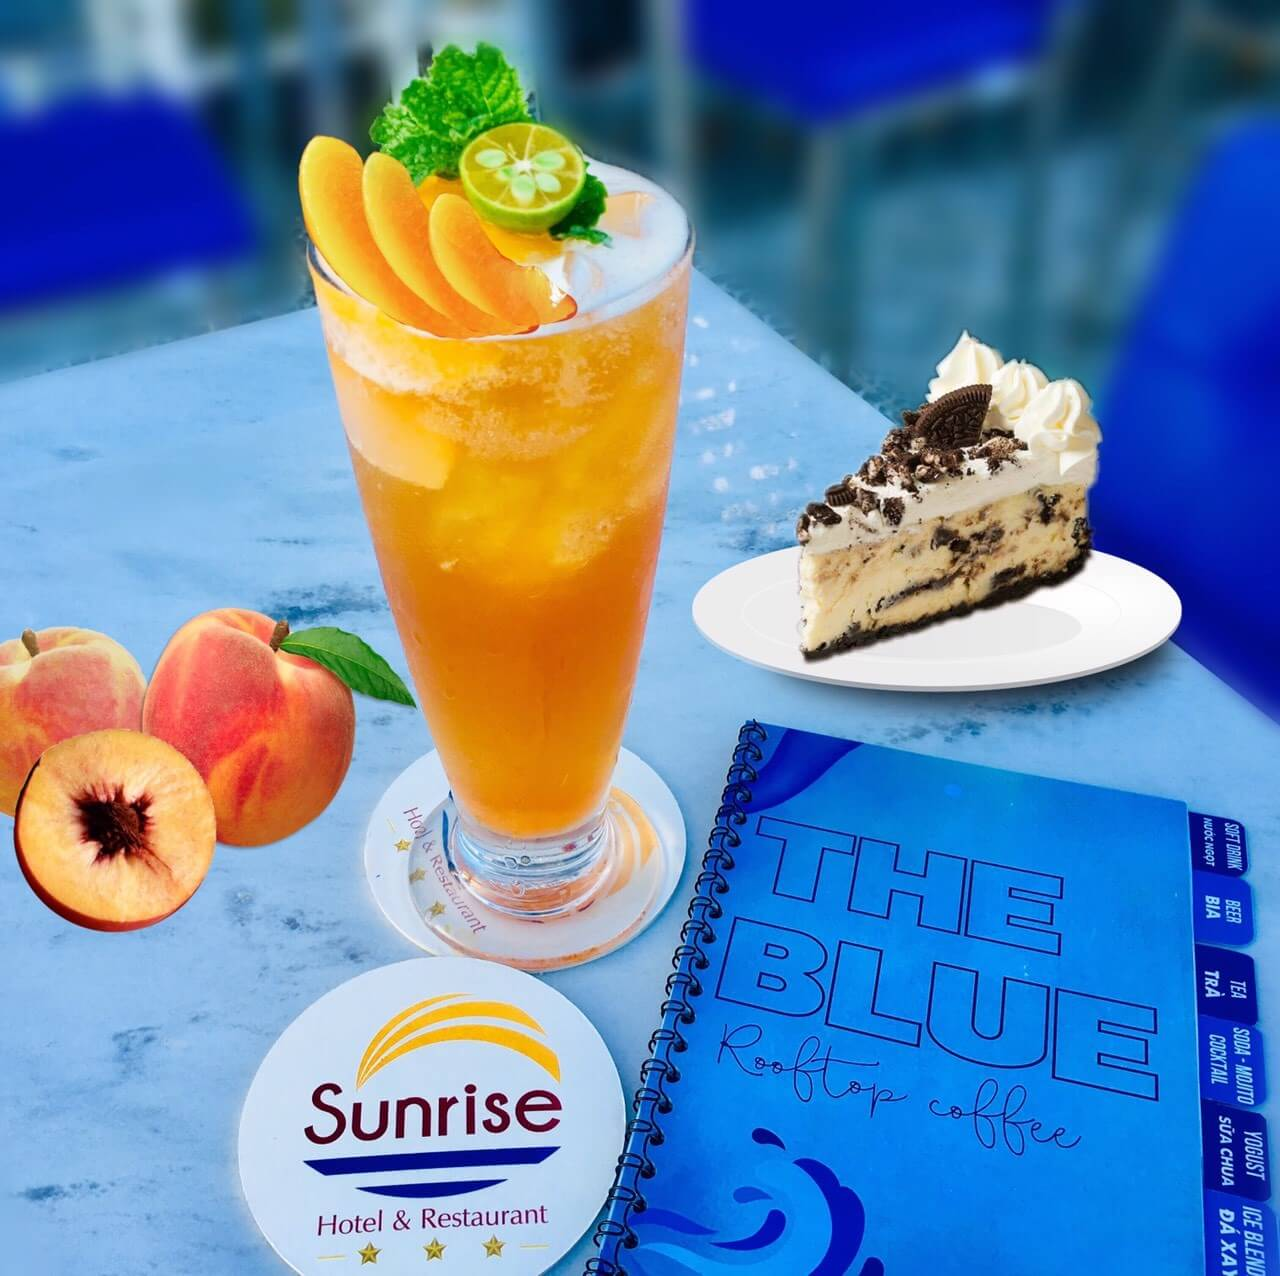 The Blue coffee Sunrise hotel